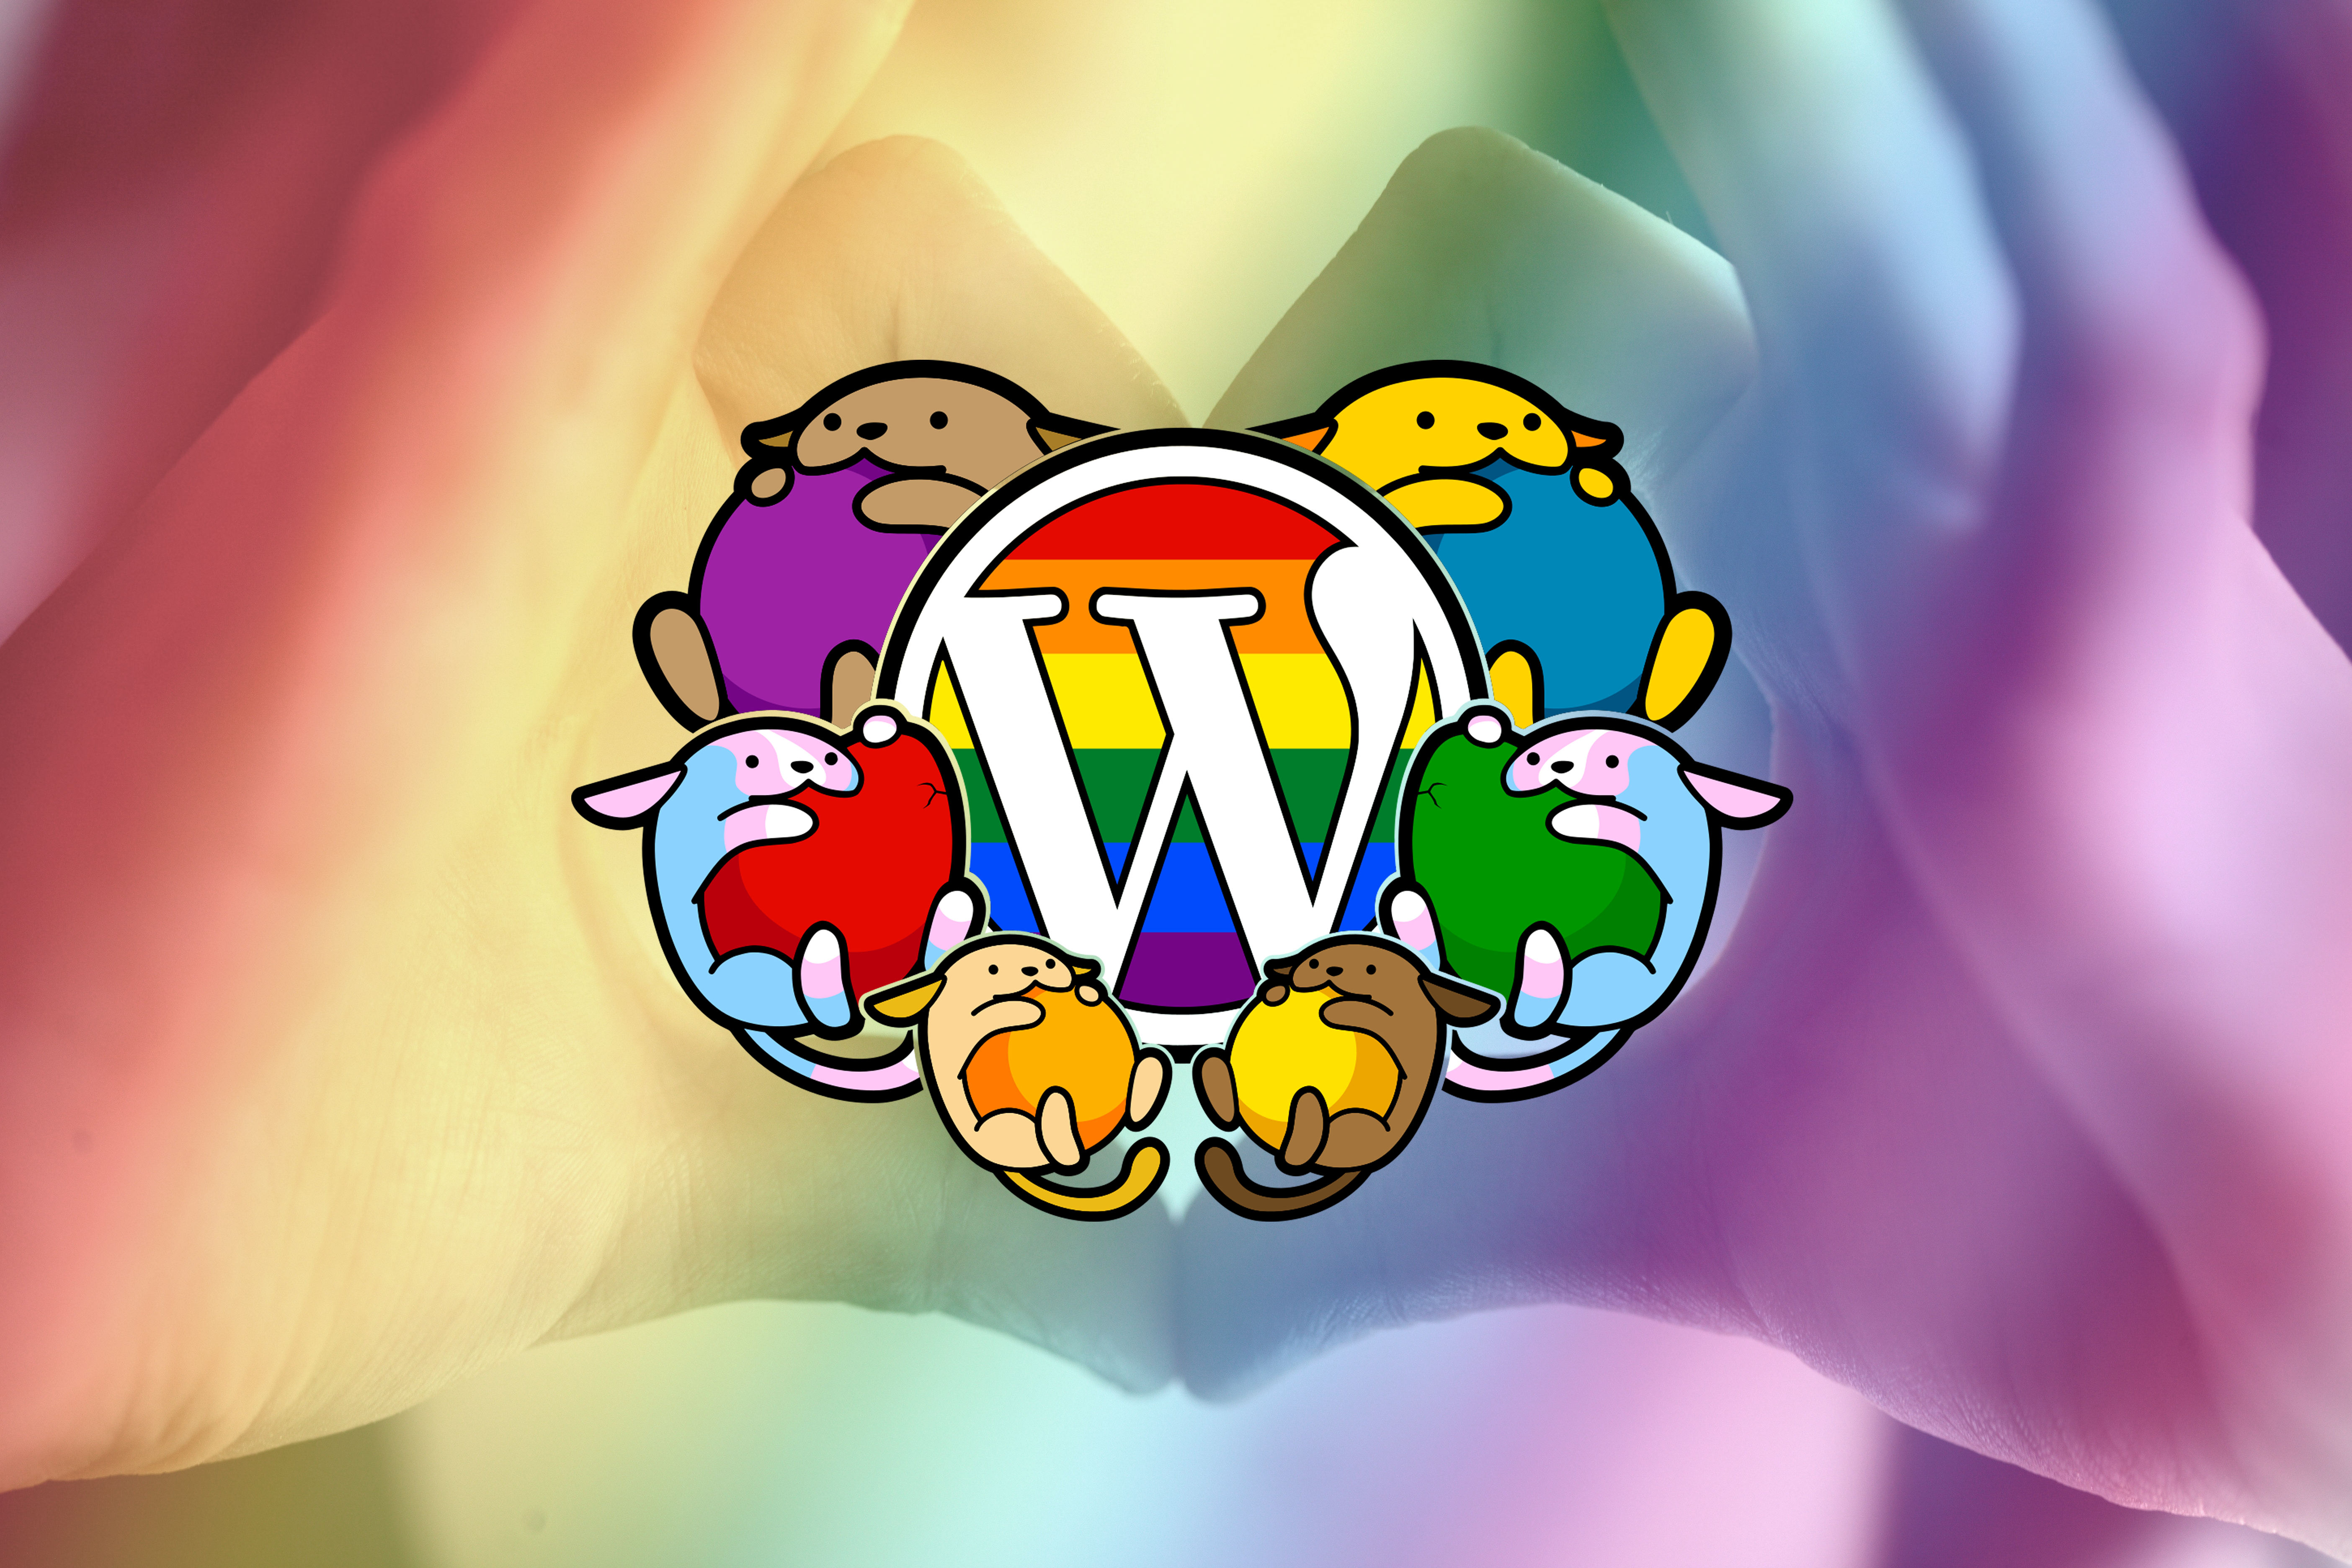 Let's Celebrate Pride by Supporting Nonprofits